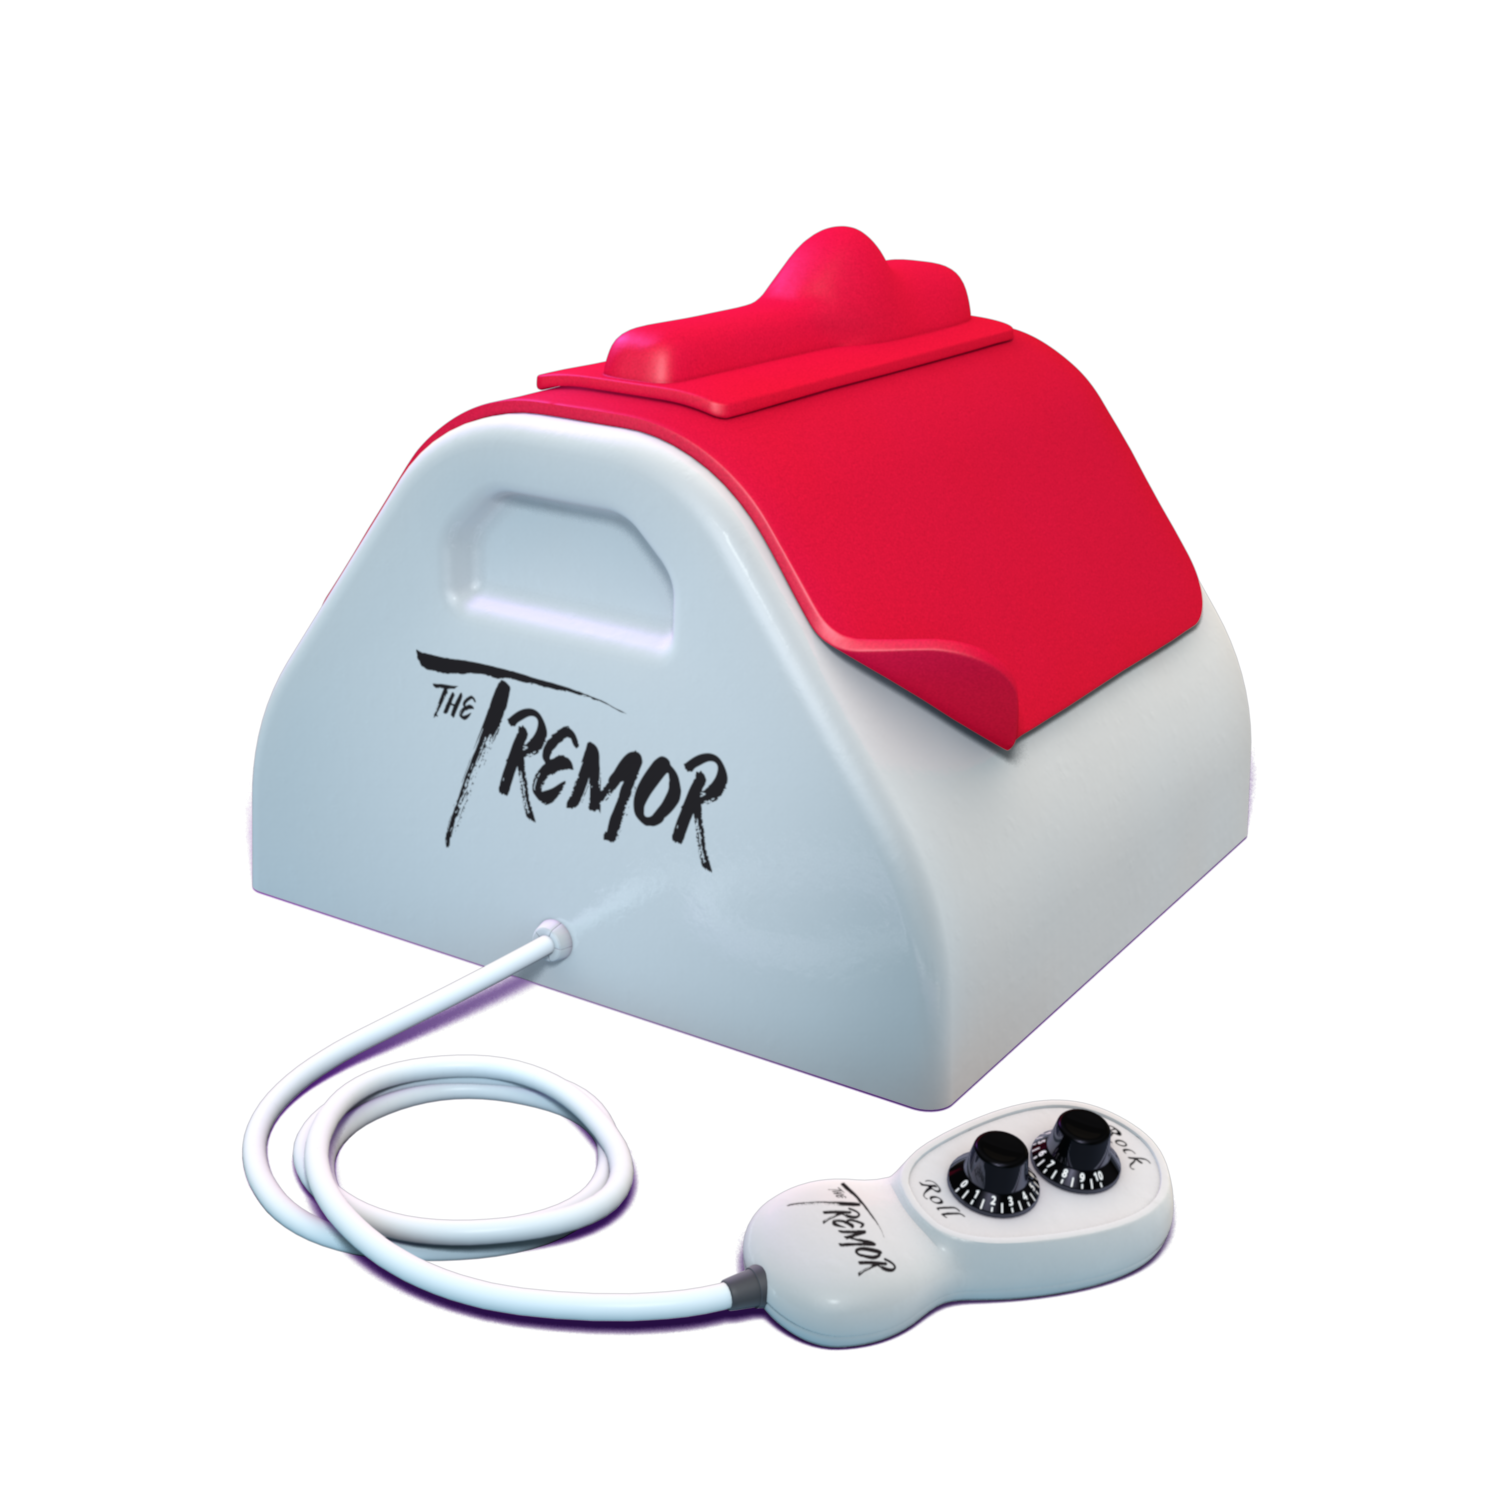 The Tremor Rock and Roll Sex Toy